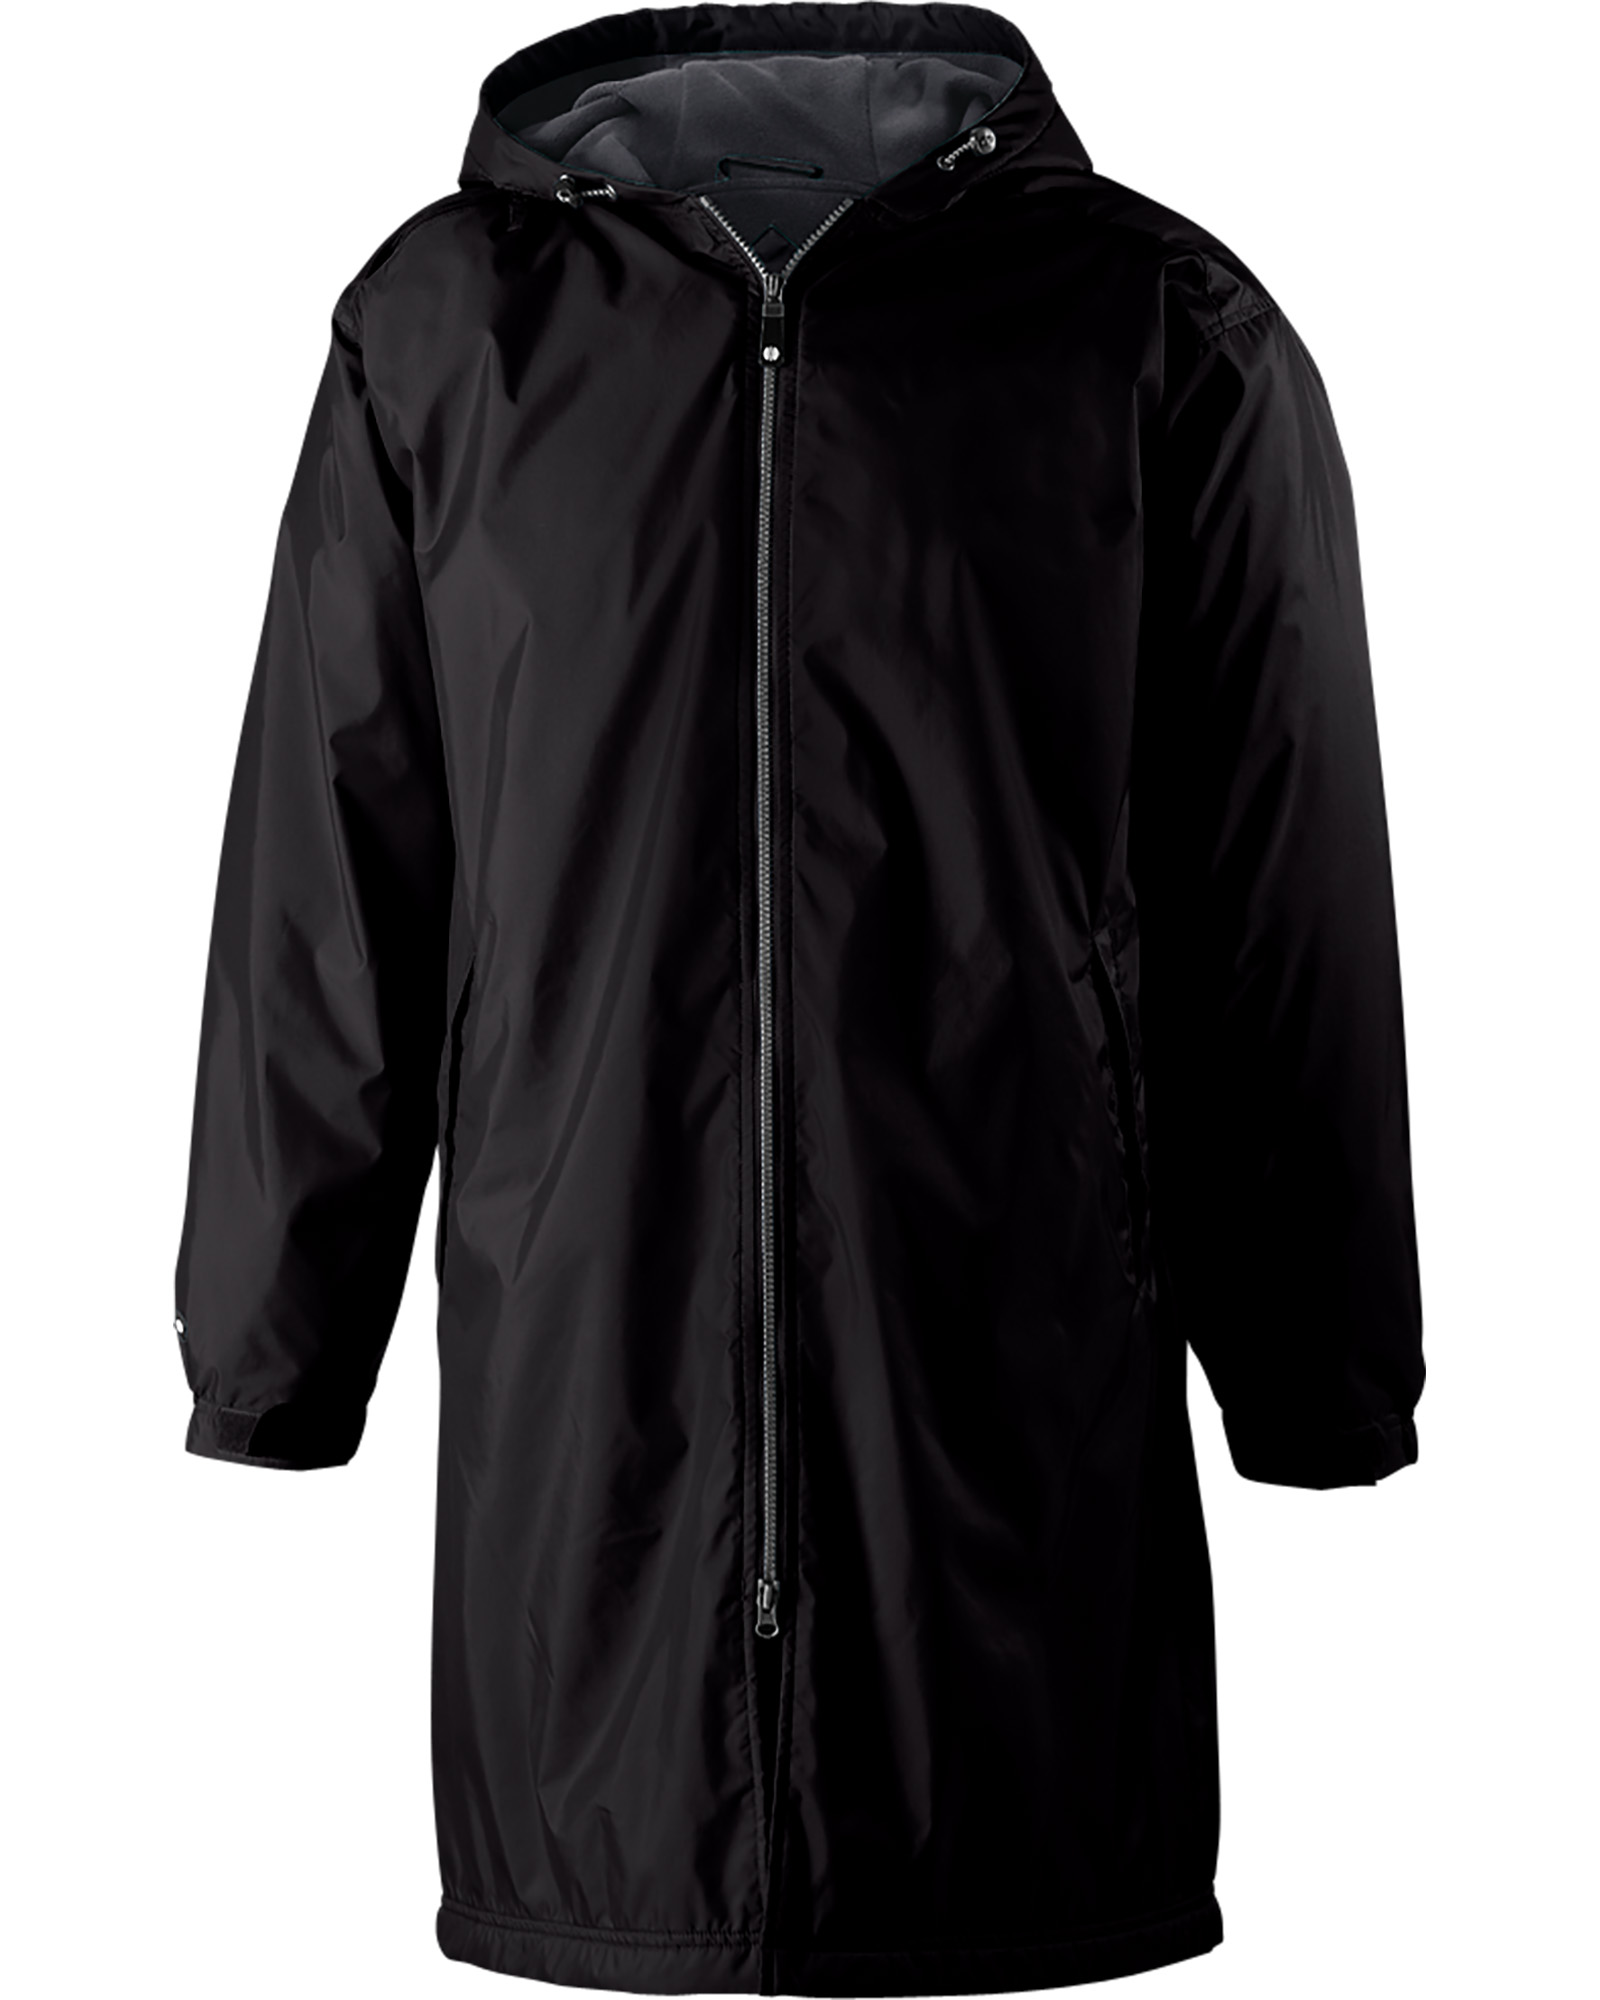 Holloway 229162 - Adult Polyester Full Zip Conquest ...